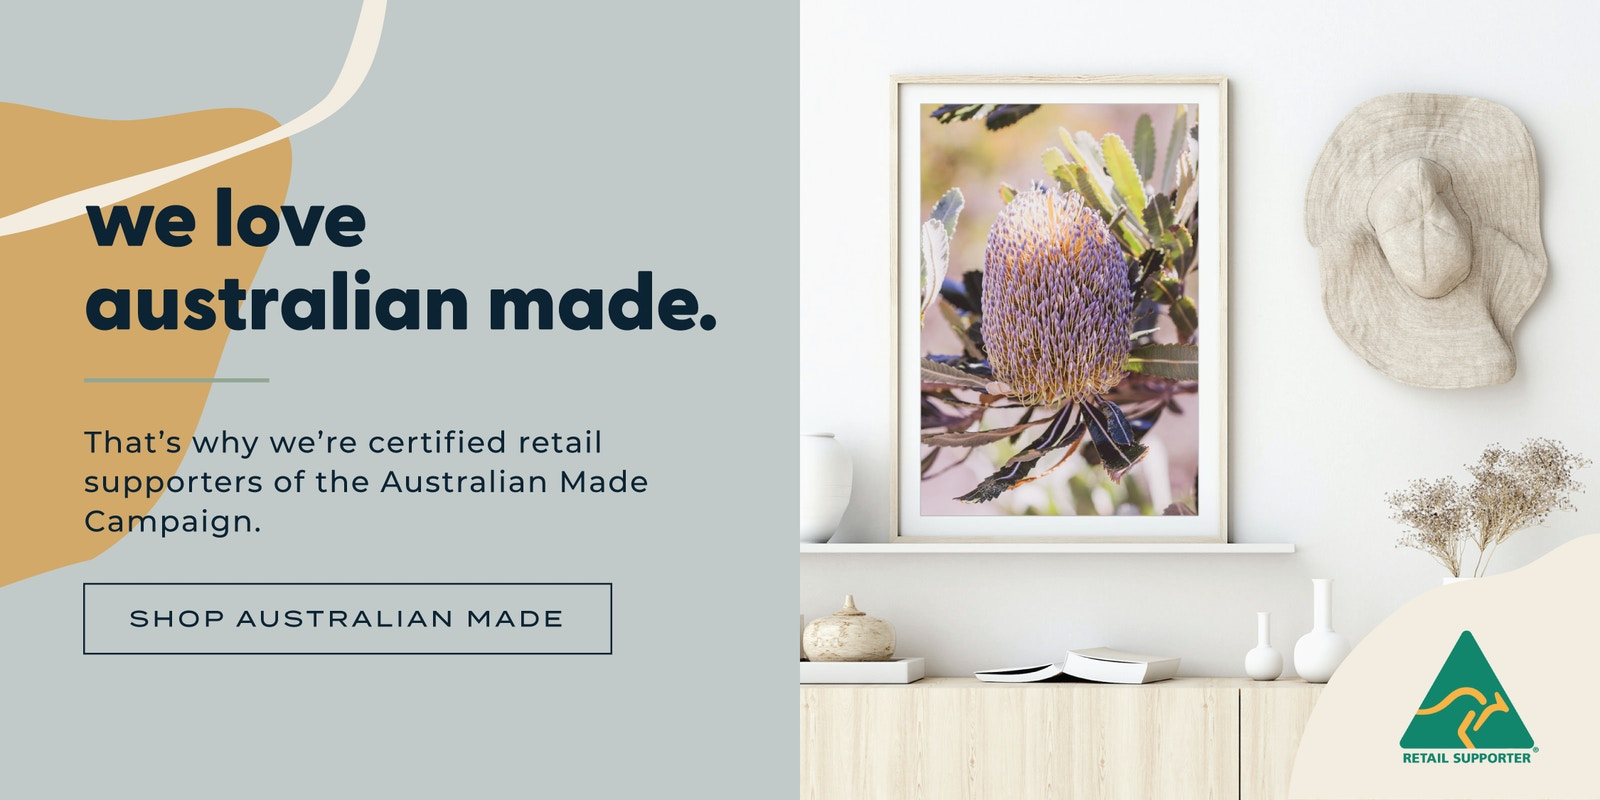 We love australian made - certified retail supporters of Australian Made Campaign